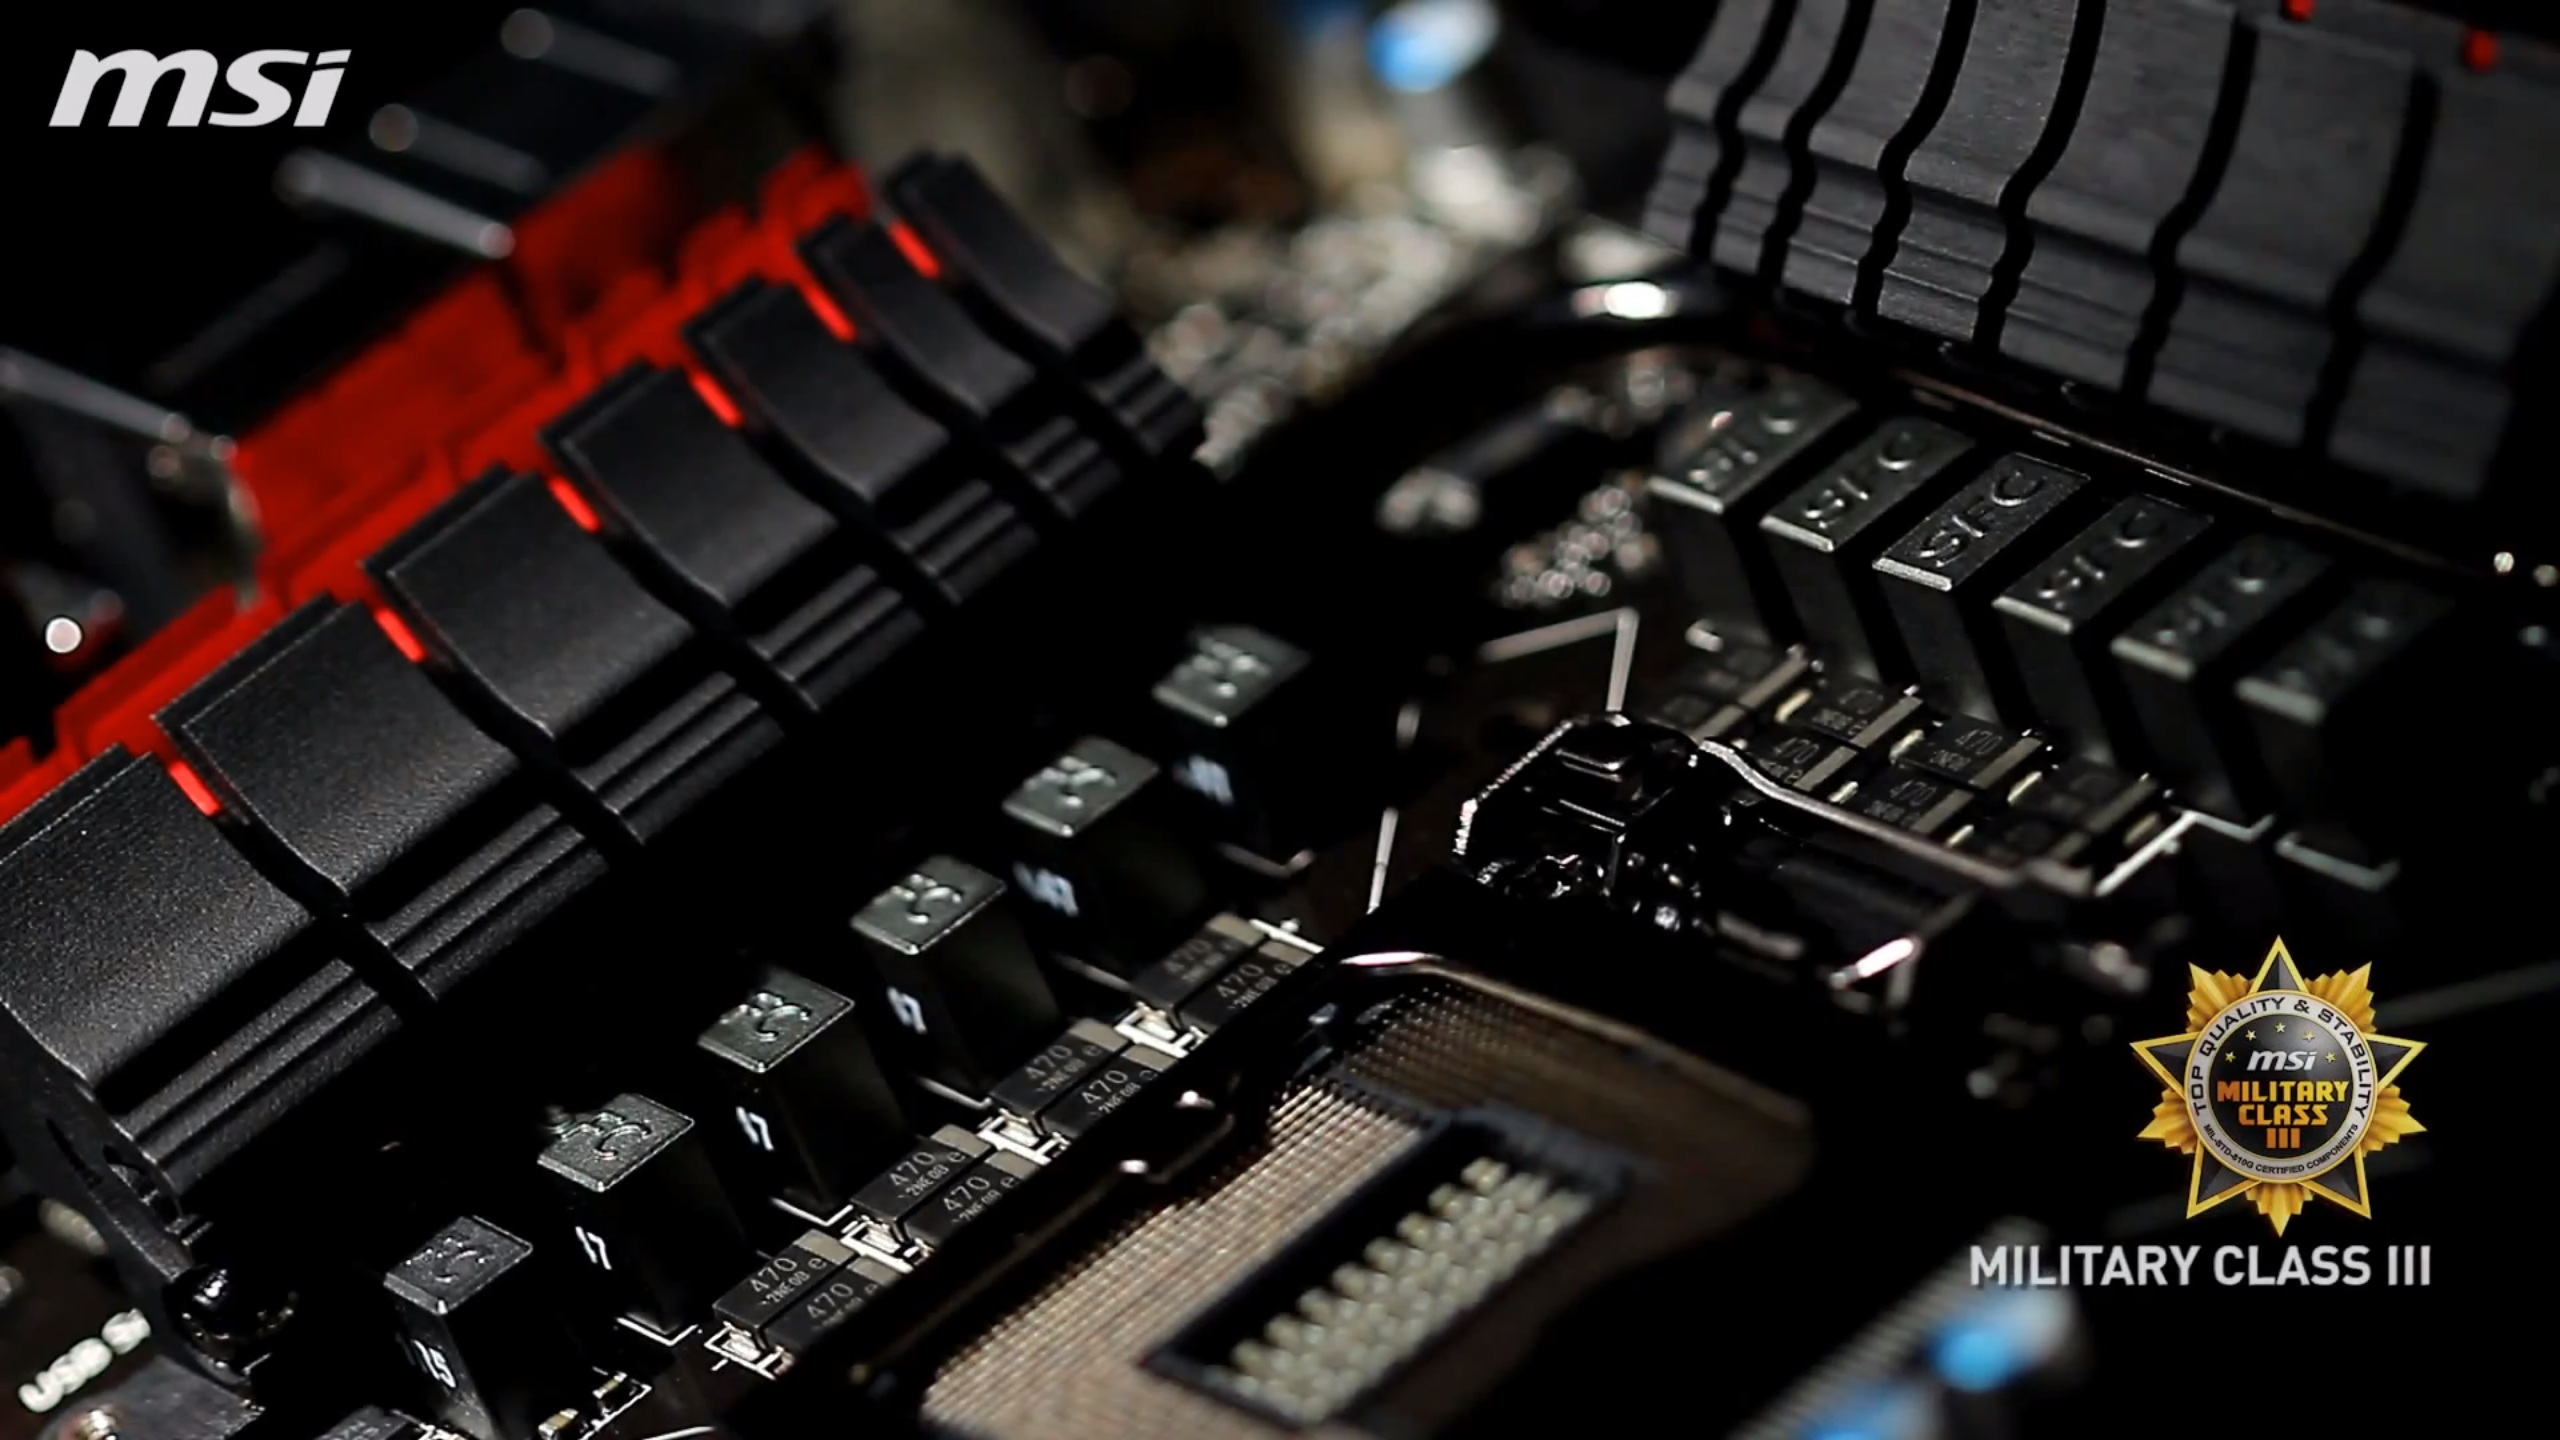 Msi Z77a-gd65 Gaming Motherboard Unveiled